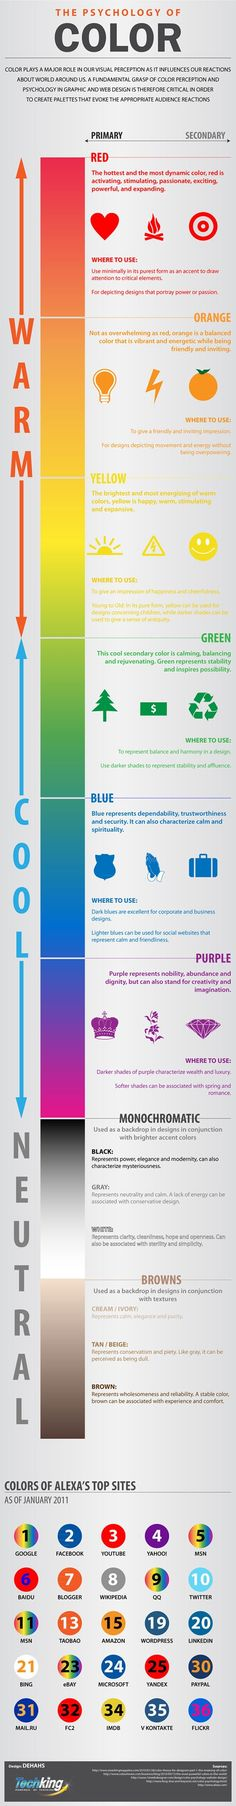 UX/UI Design / The Psychology of Color #design